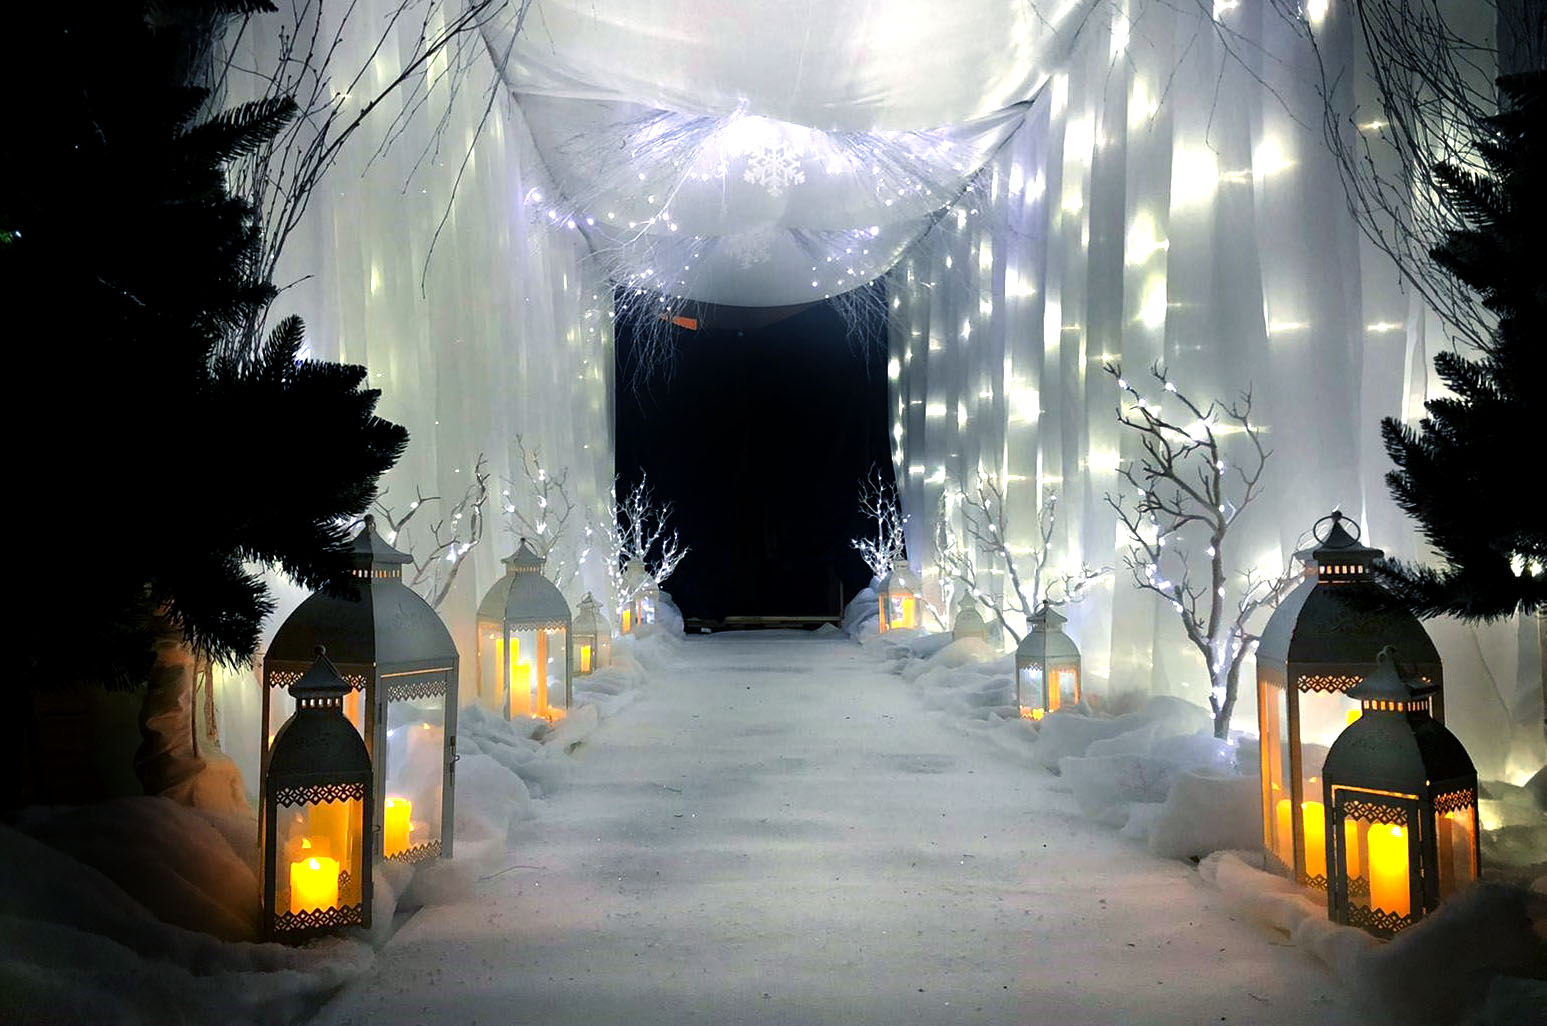 Narnia Themed Decor Hire in Hertfordshire, Bedfordshire, Buckinghamshire, Essex & London